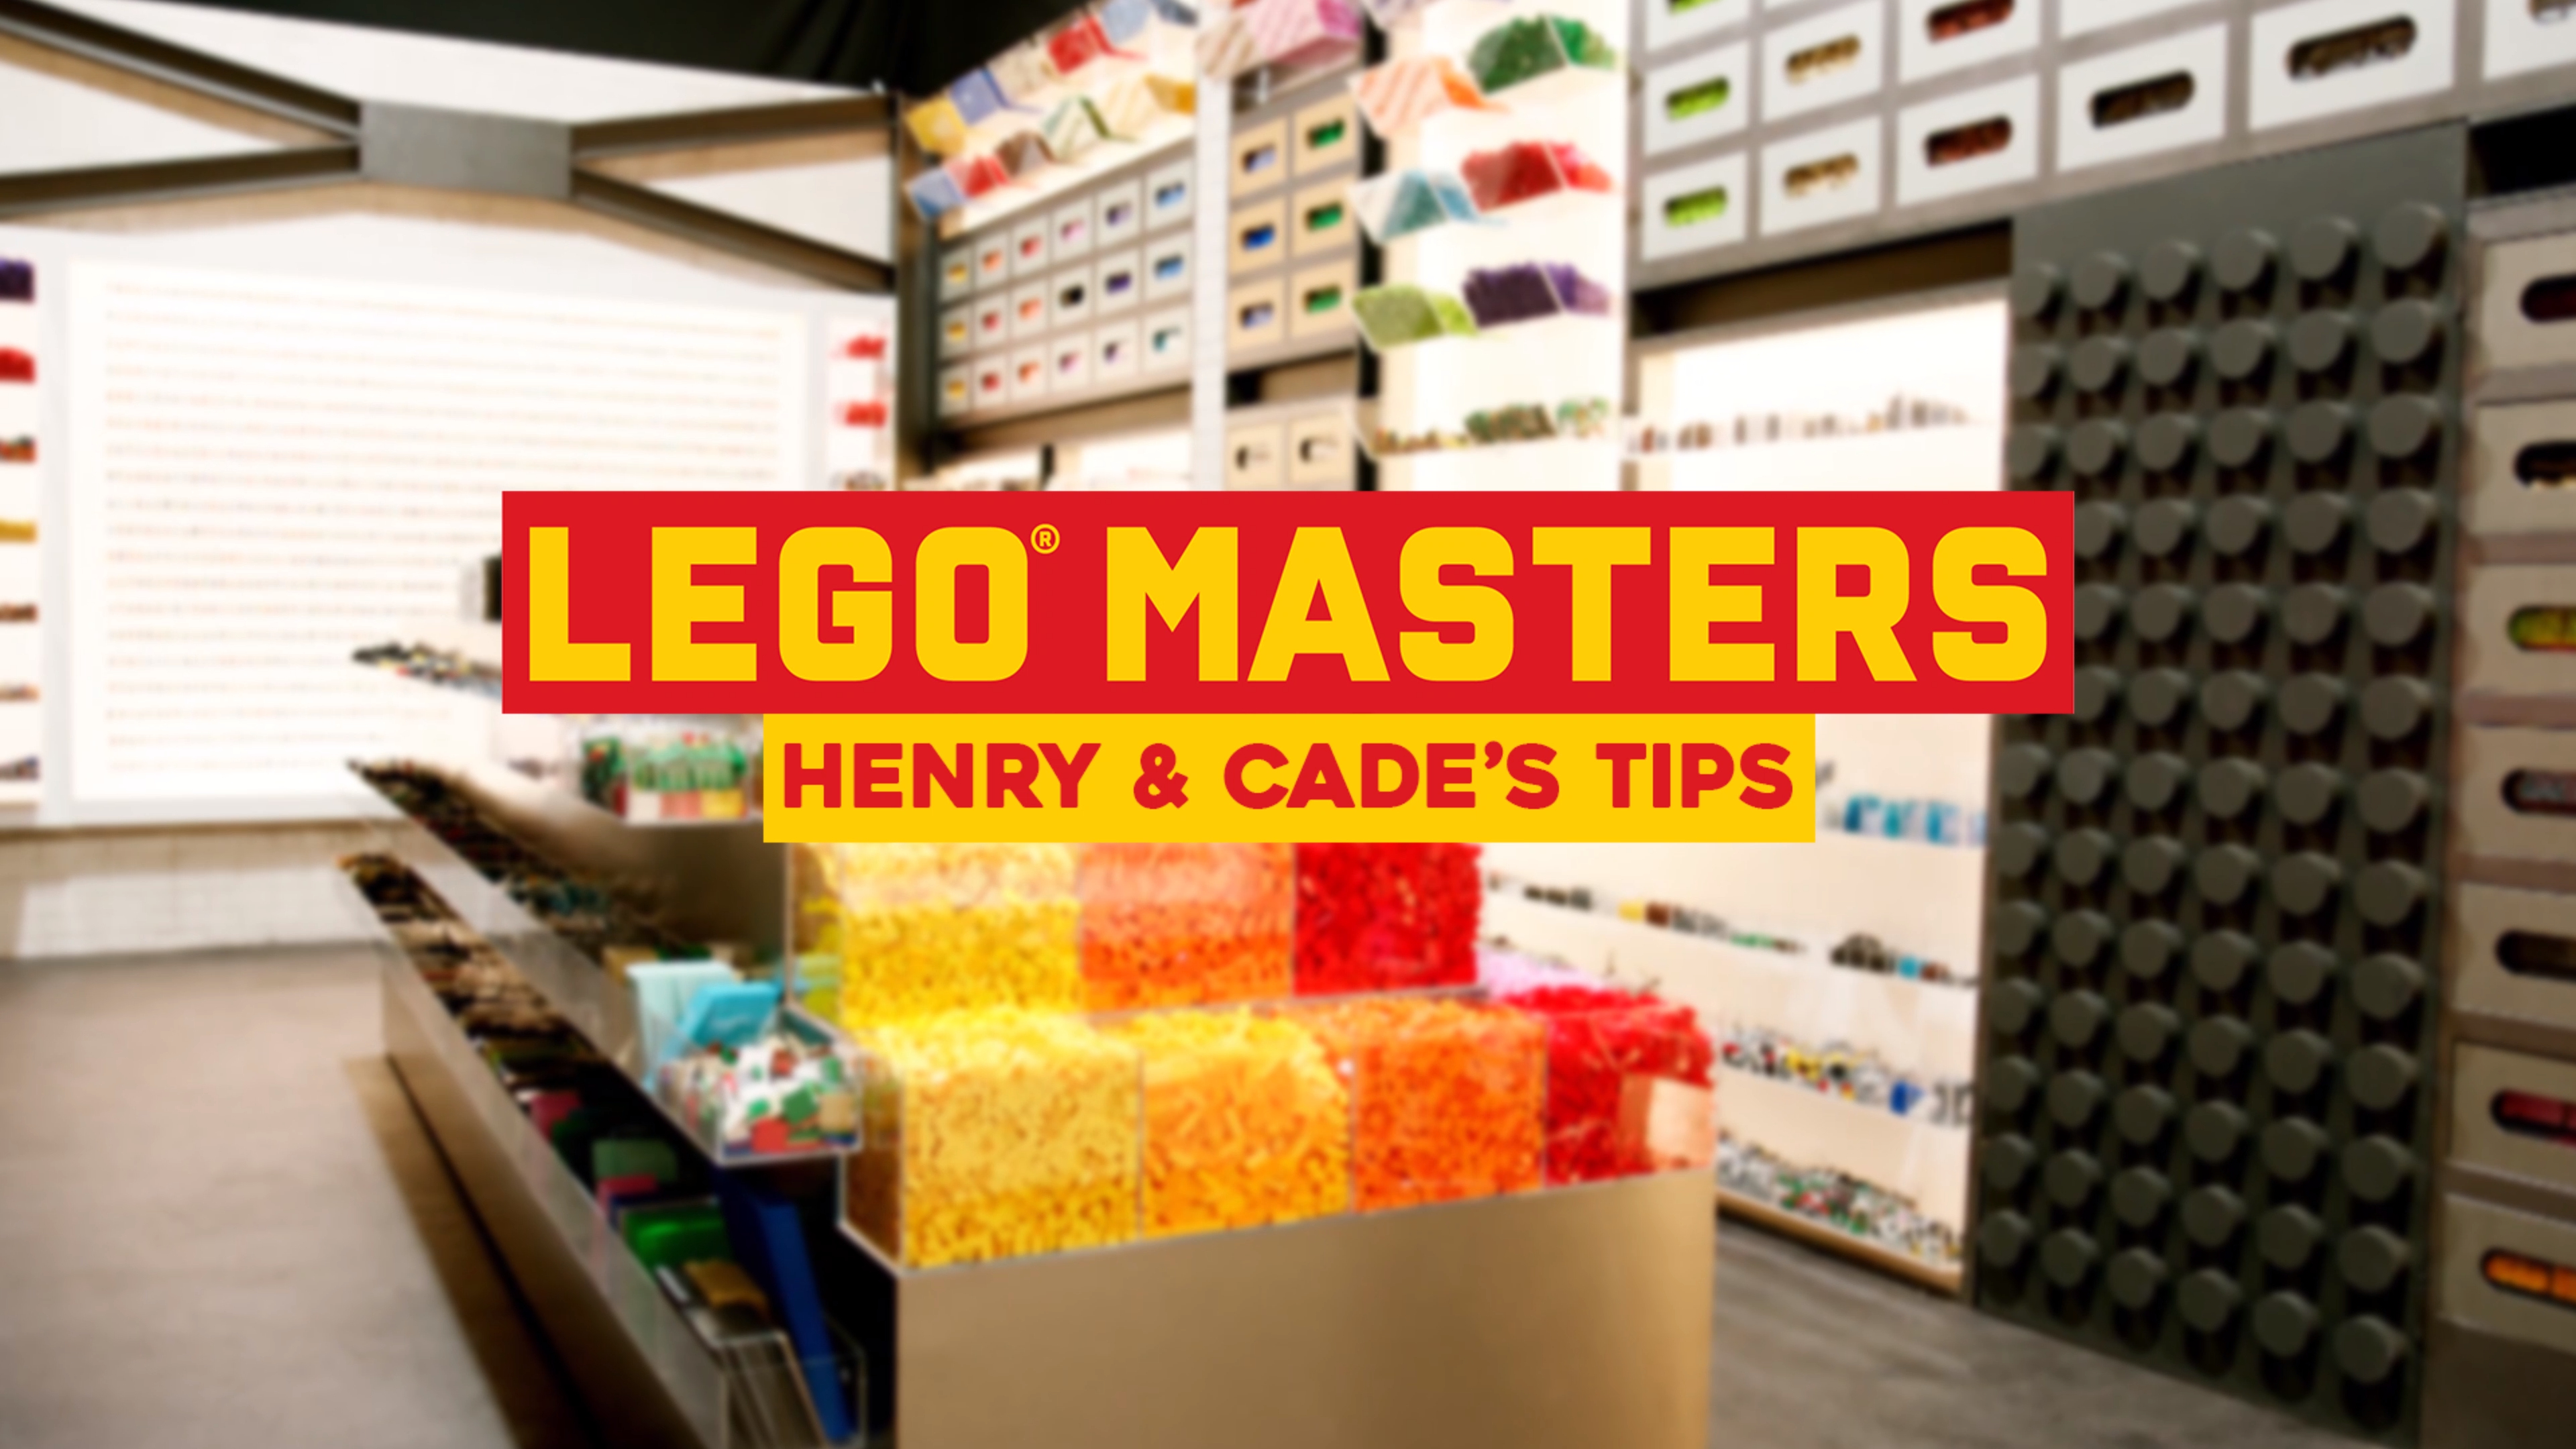 Henry and Cade's tips will make you a better LEGO builder